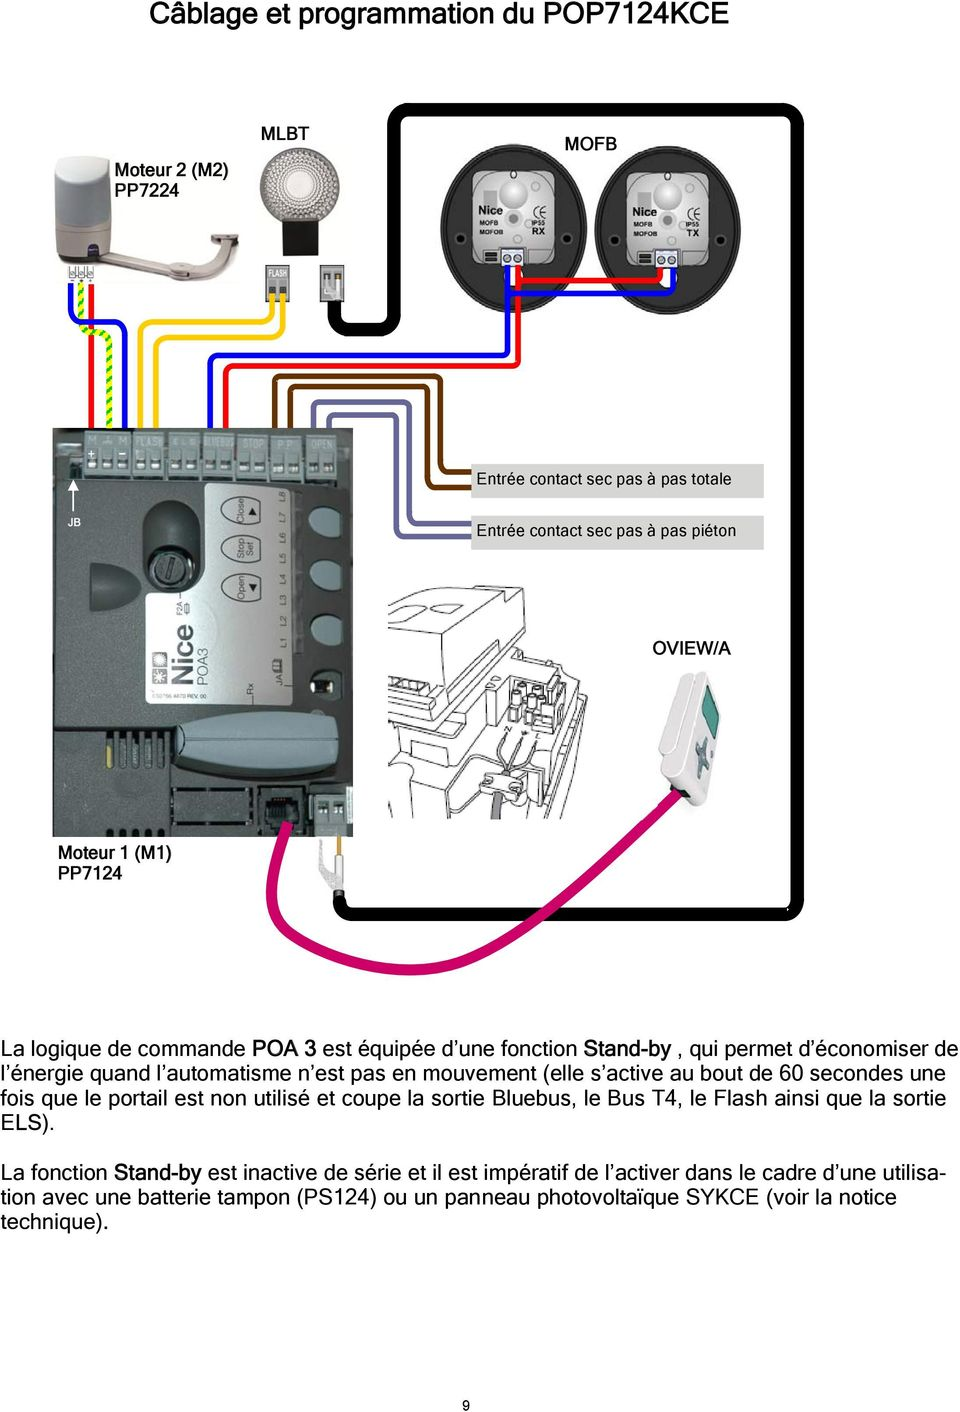 Installation Dun Pop7124kce Pdf